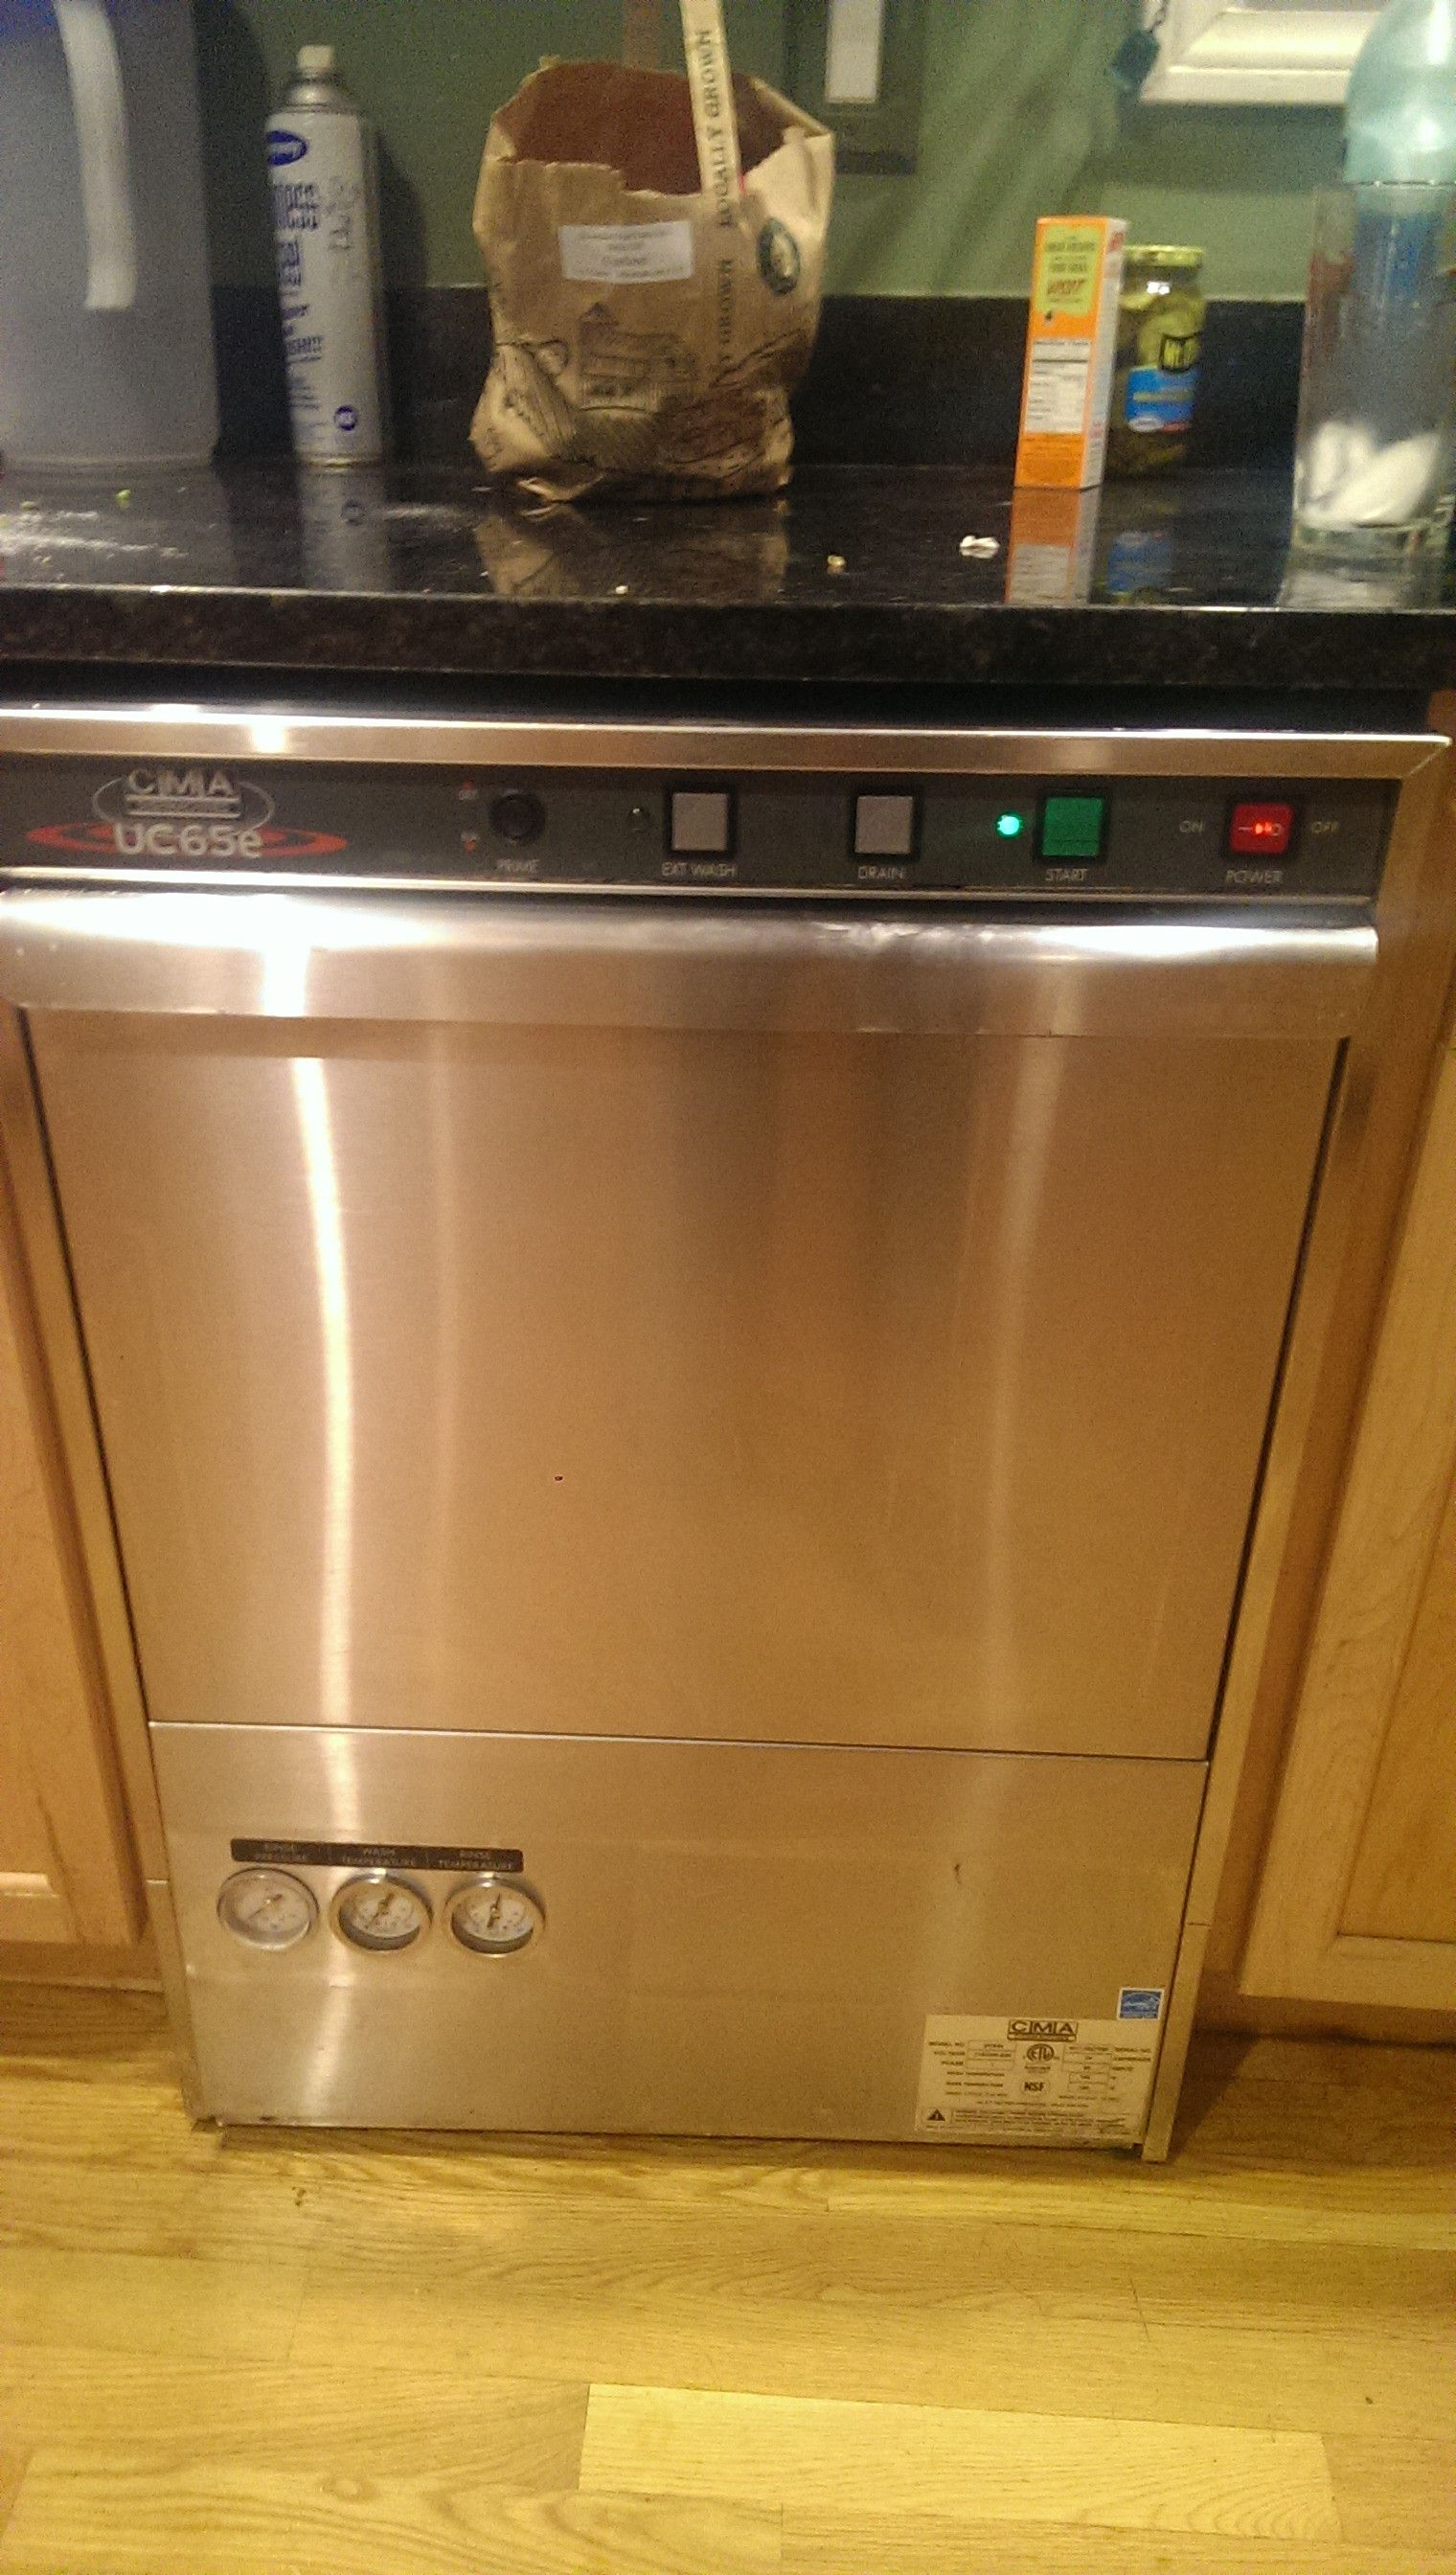 Uncategorized Kitchen Appliances Seconds installed a commercial dishwasher dishes done in 90 seconds seconds